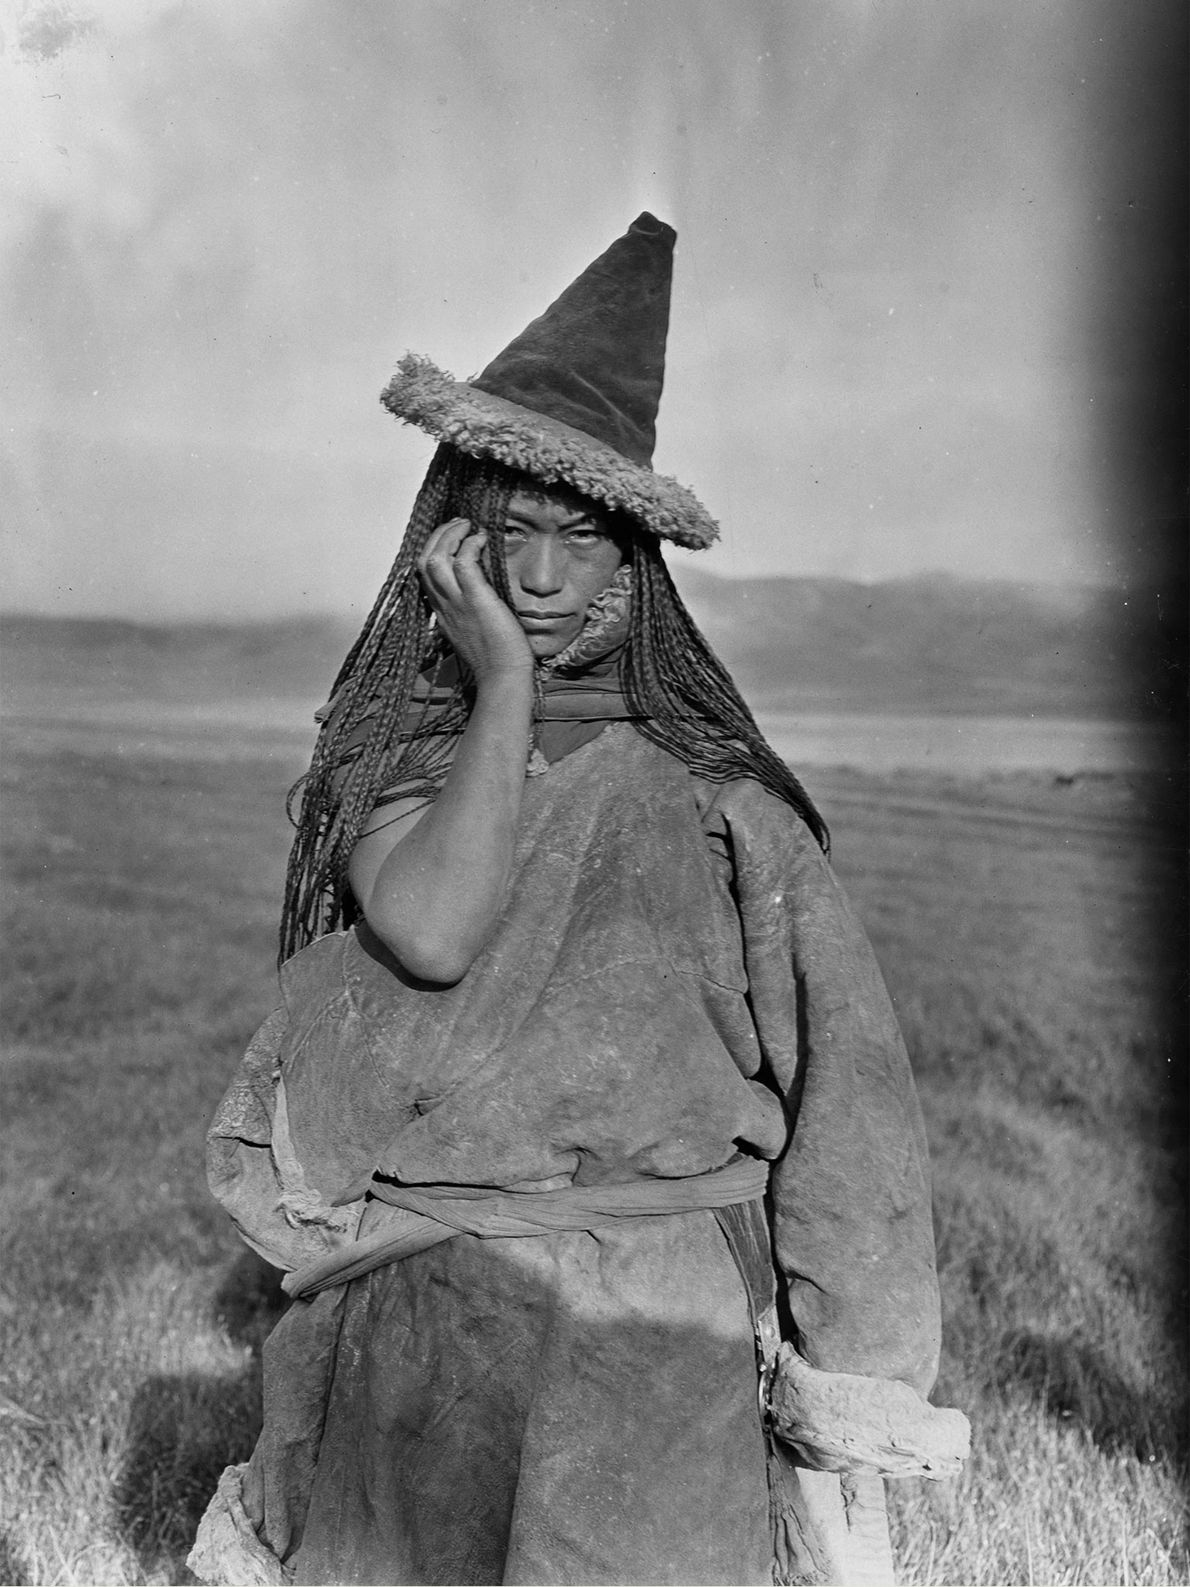 A nomadic Tibetan woman in the People's Republic of China wears a pointed hat made of ...